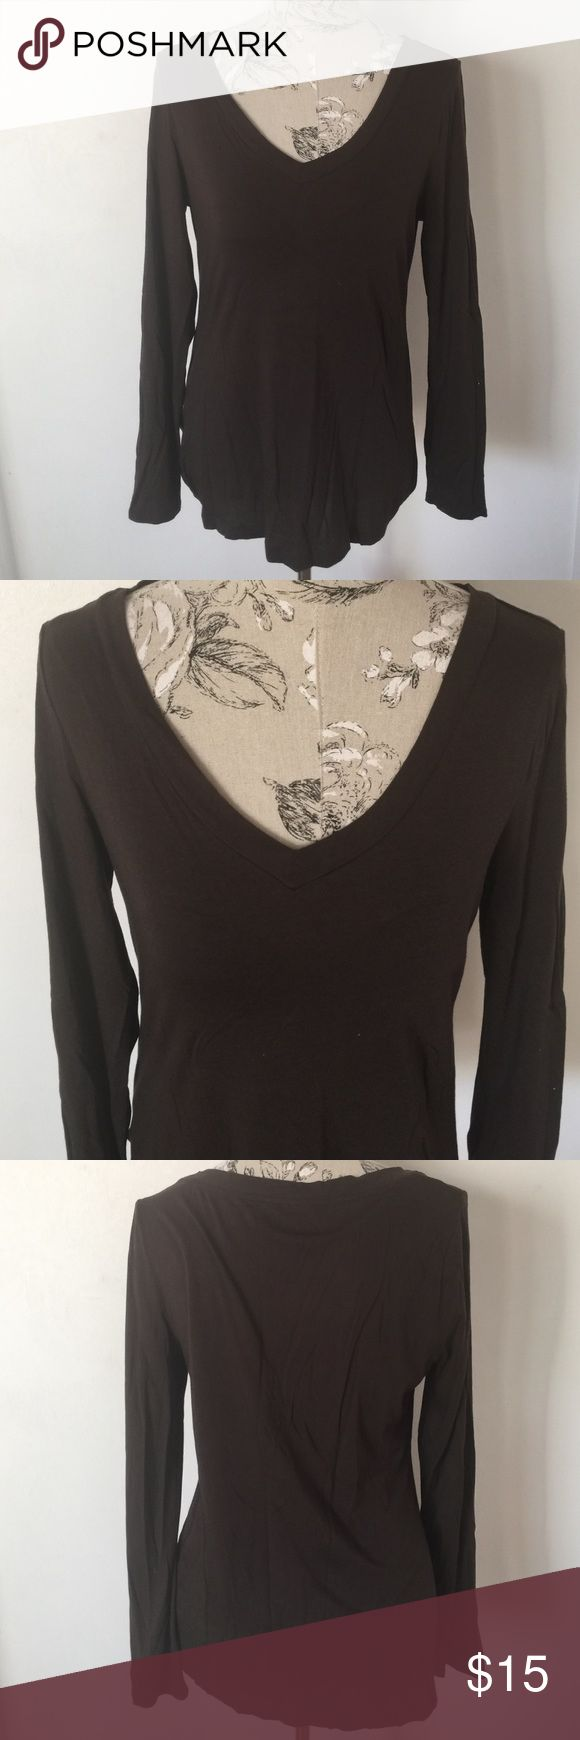 loft Brown Ling Sleeve Top L Excellent condition. 60% Pima cotton 40% modal. V neck. LOFT Tops Tees - Long Sleeve